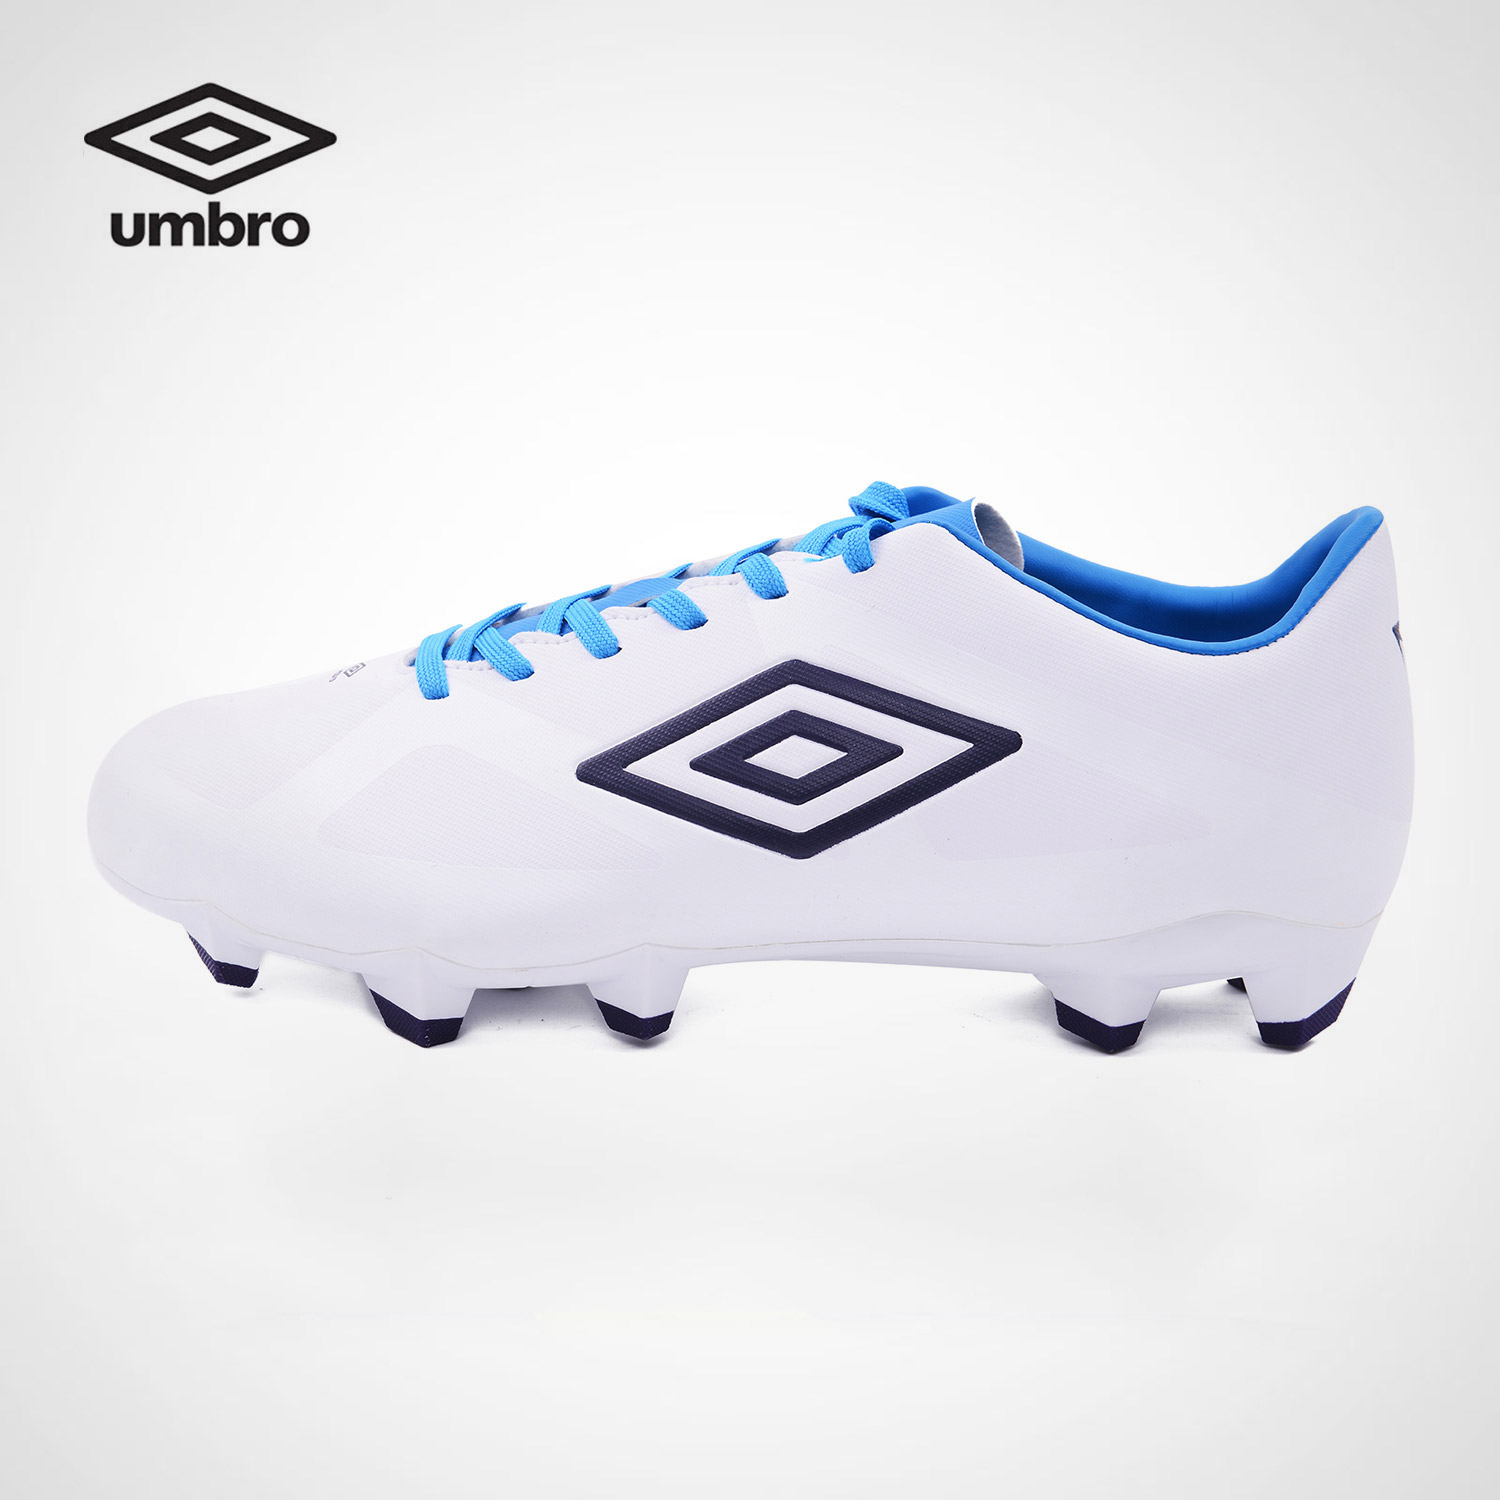 Umbro Football Shoes Men New Rubber Soles Anti Slip Adult Students  Professional Training Sneakers Sports Shoes 83b309b52